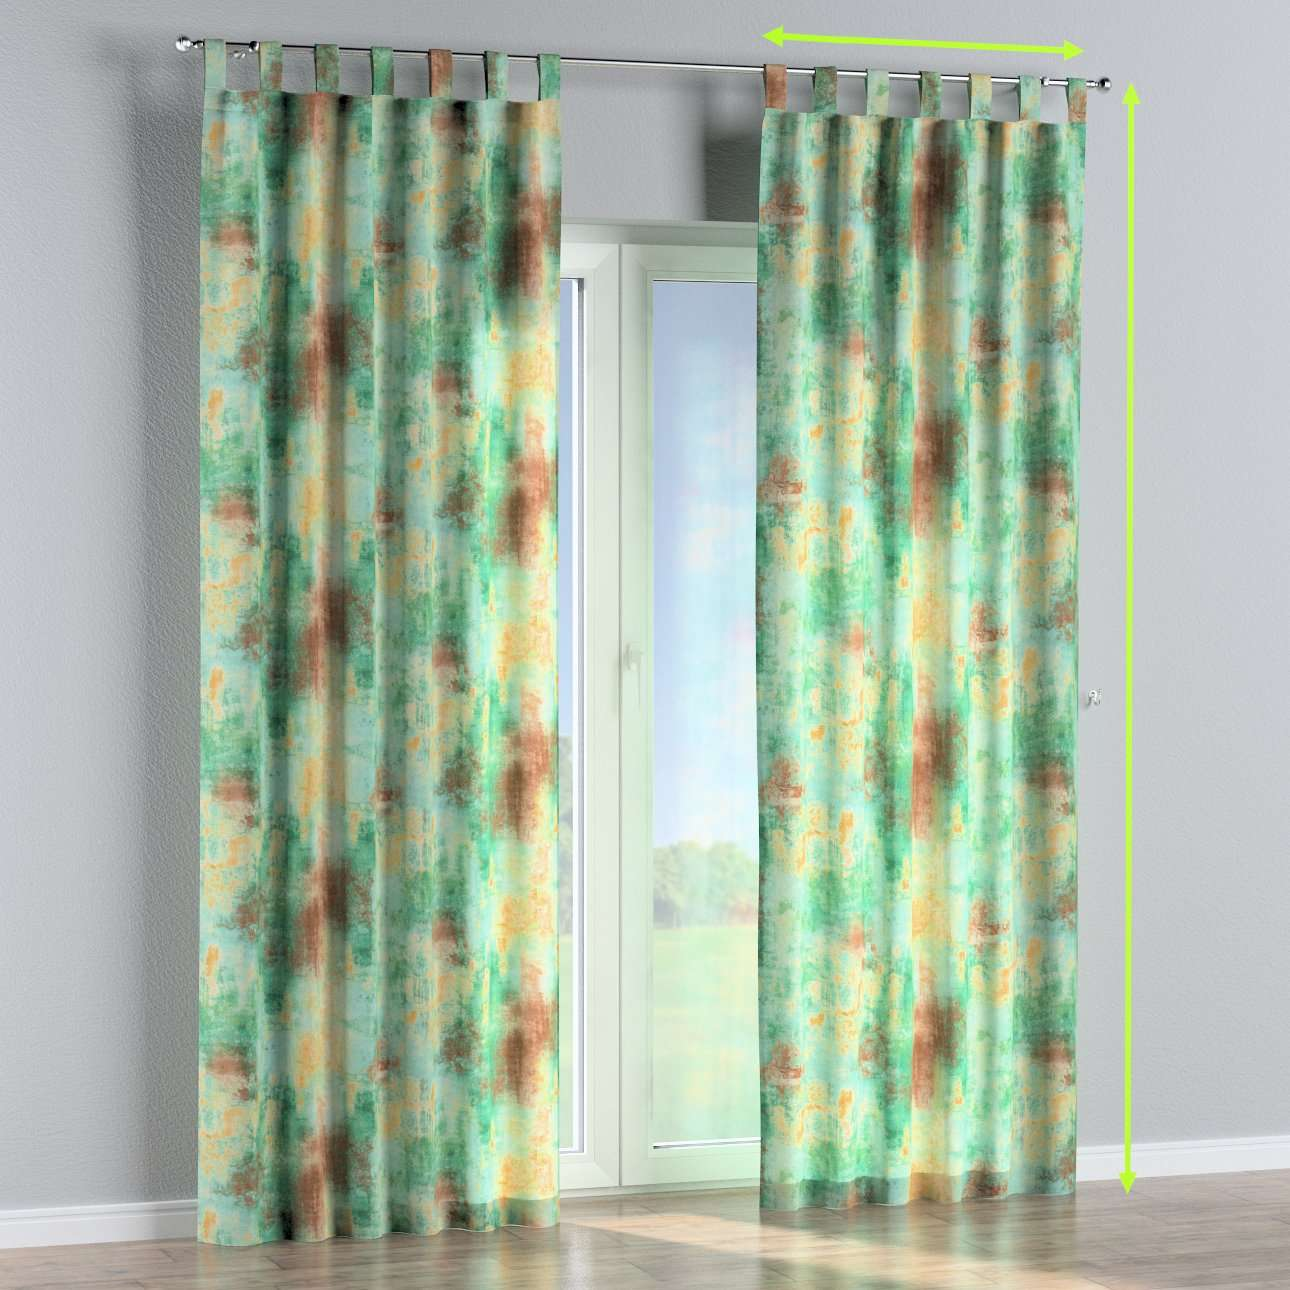 Tab top curtains in collection Urban Jungle, fabric: 141-22